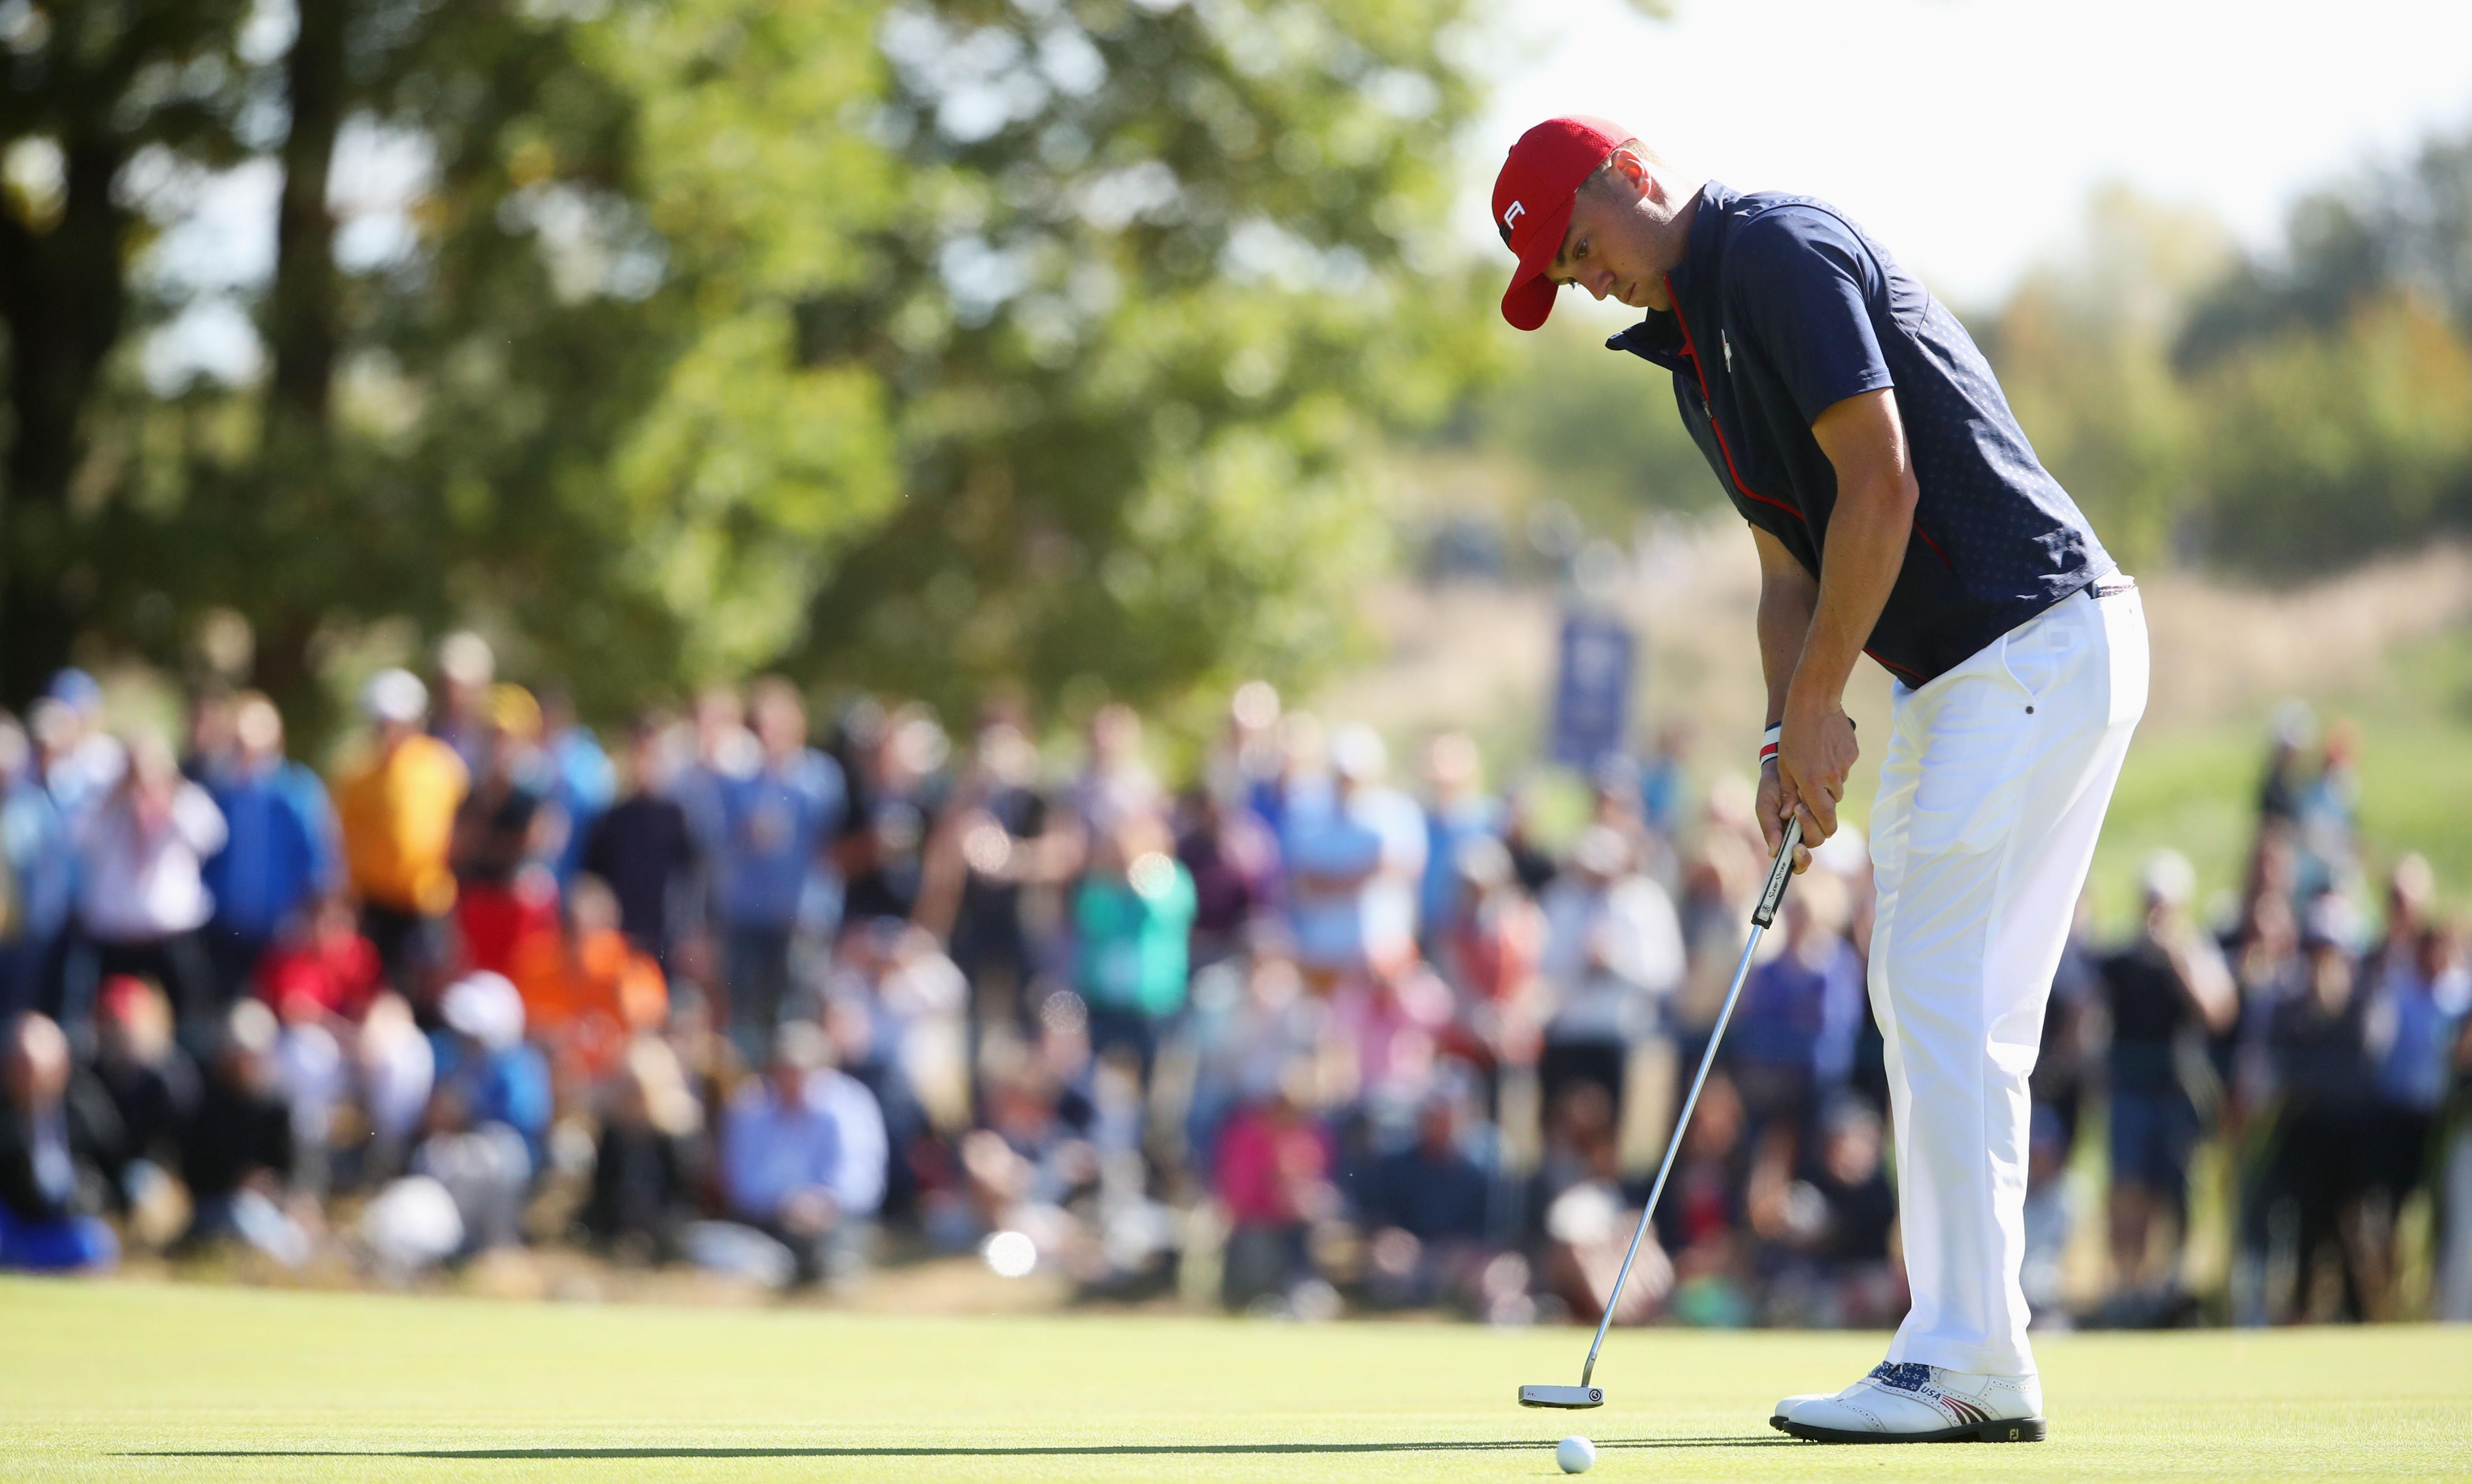 Ryder Cup 2018: Guardian writers select their standout moments